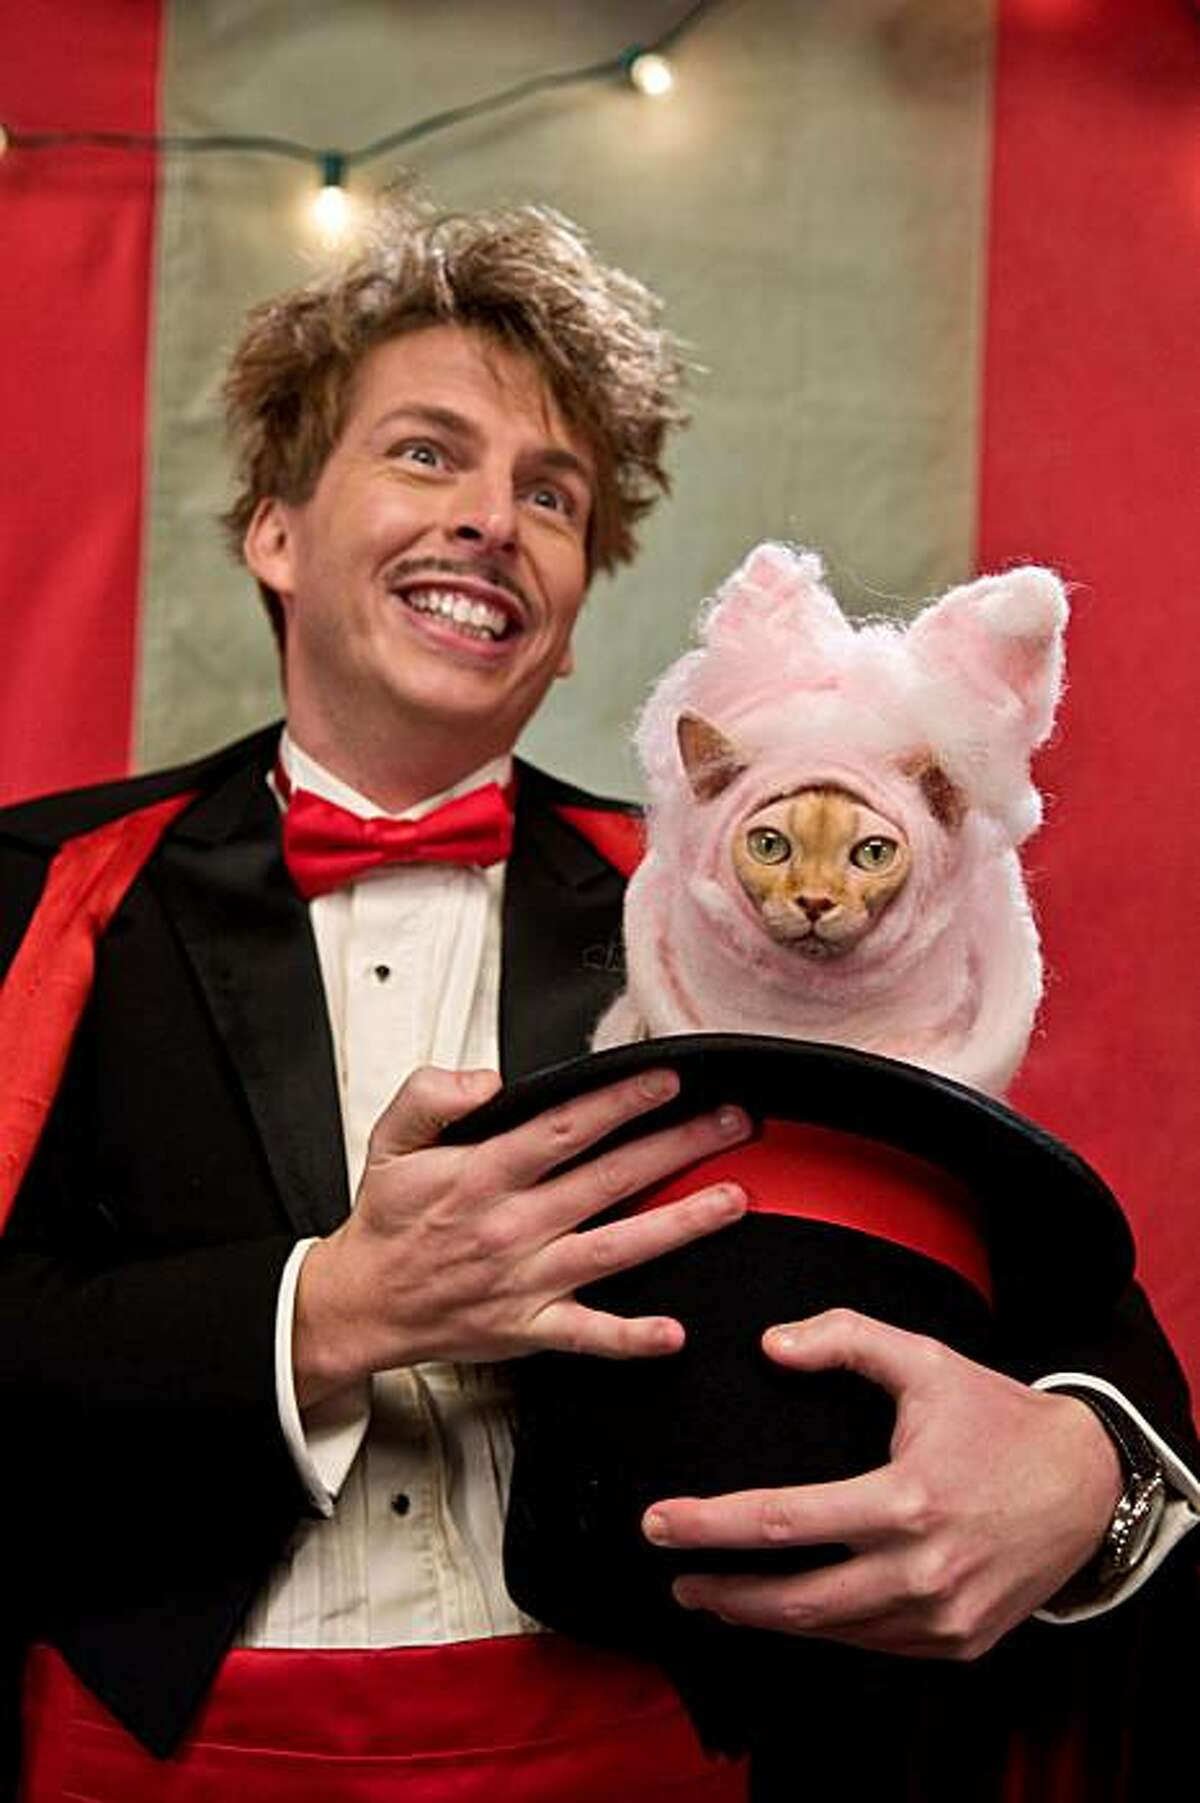 (L-r) JACK McBRAYER as Chuck and KITTY GALORE, voiced by BETTE MIDLER in Warner Bros. Pictures' and Village Roadshow Pictures' comedy